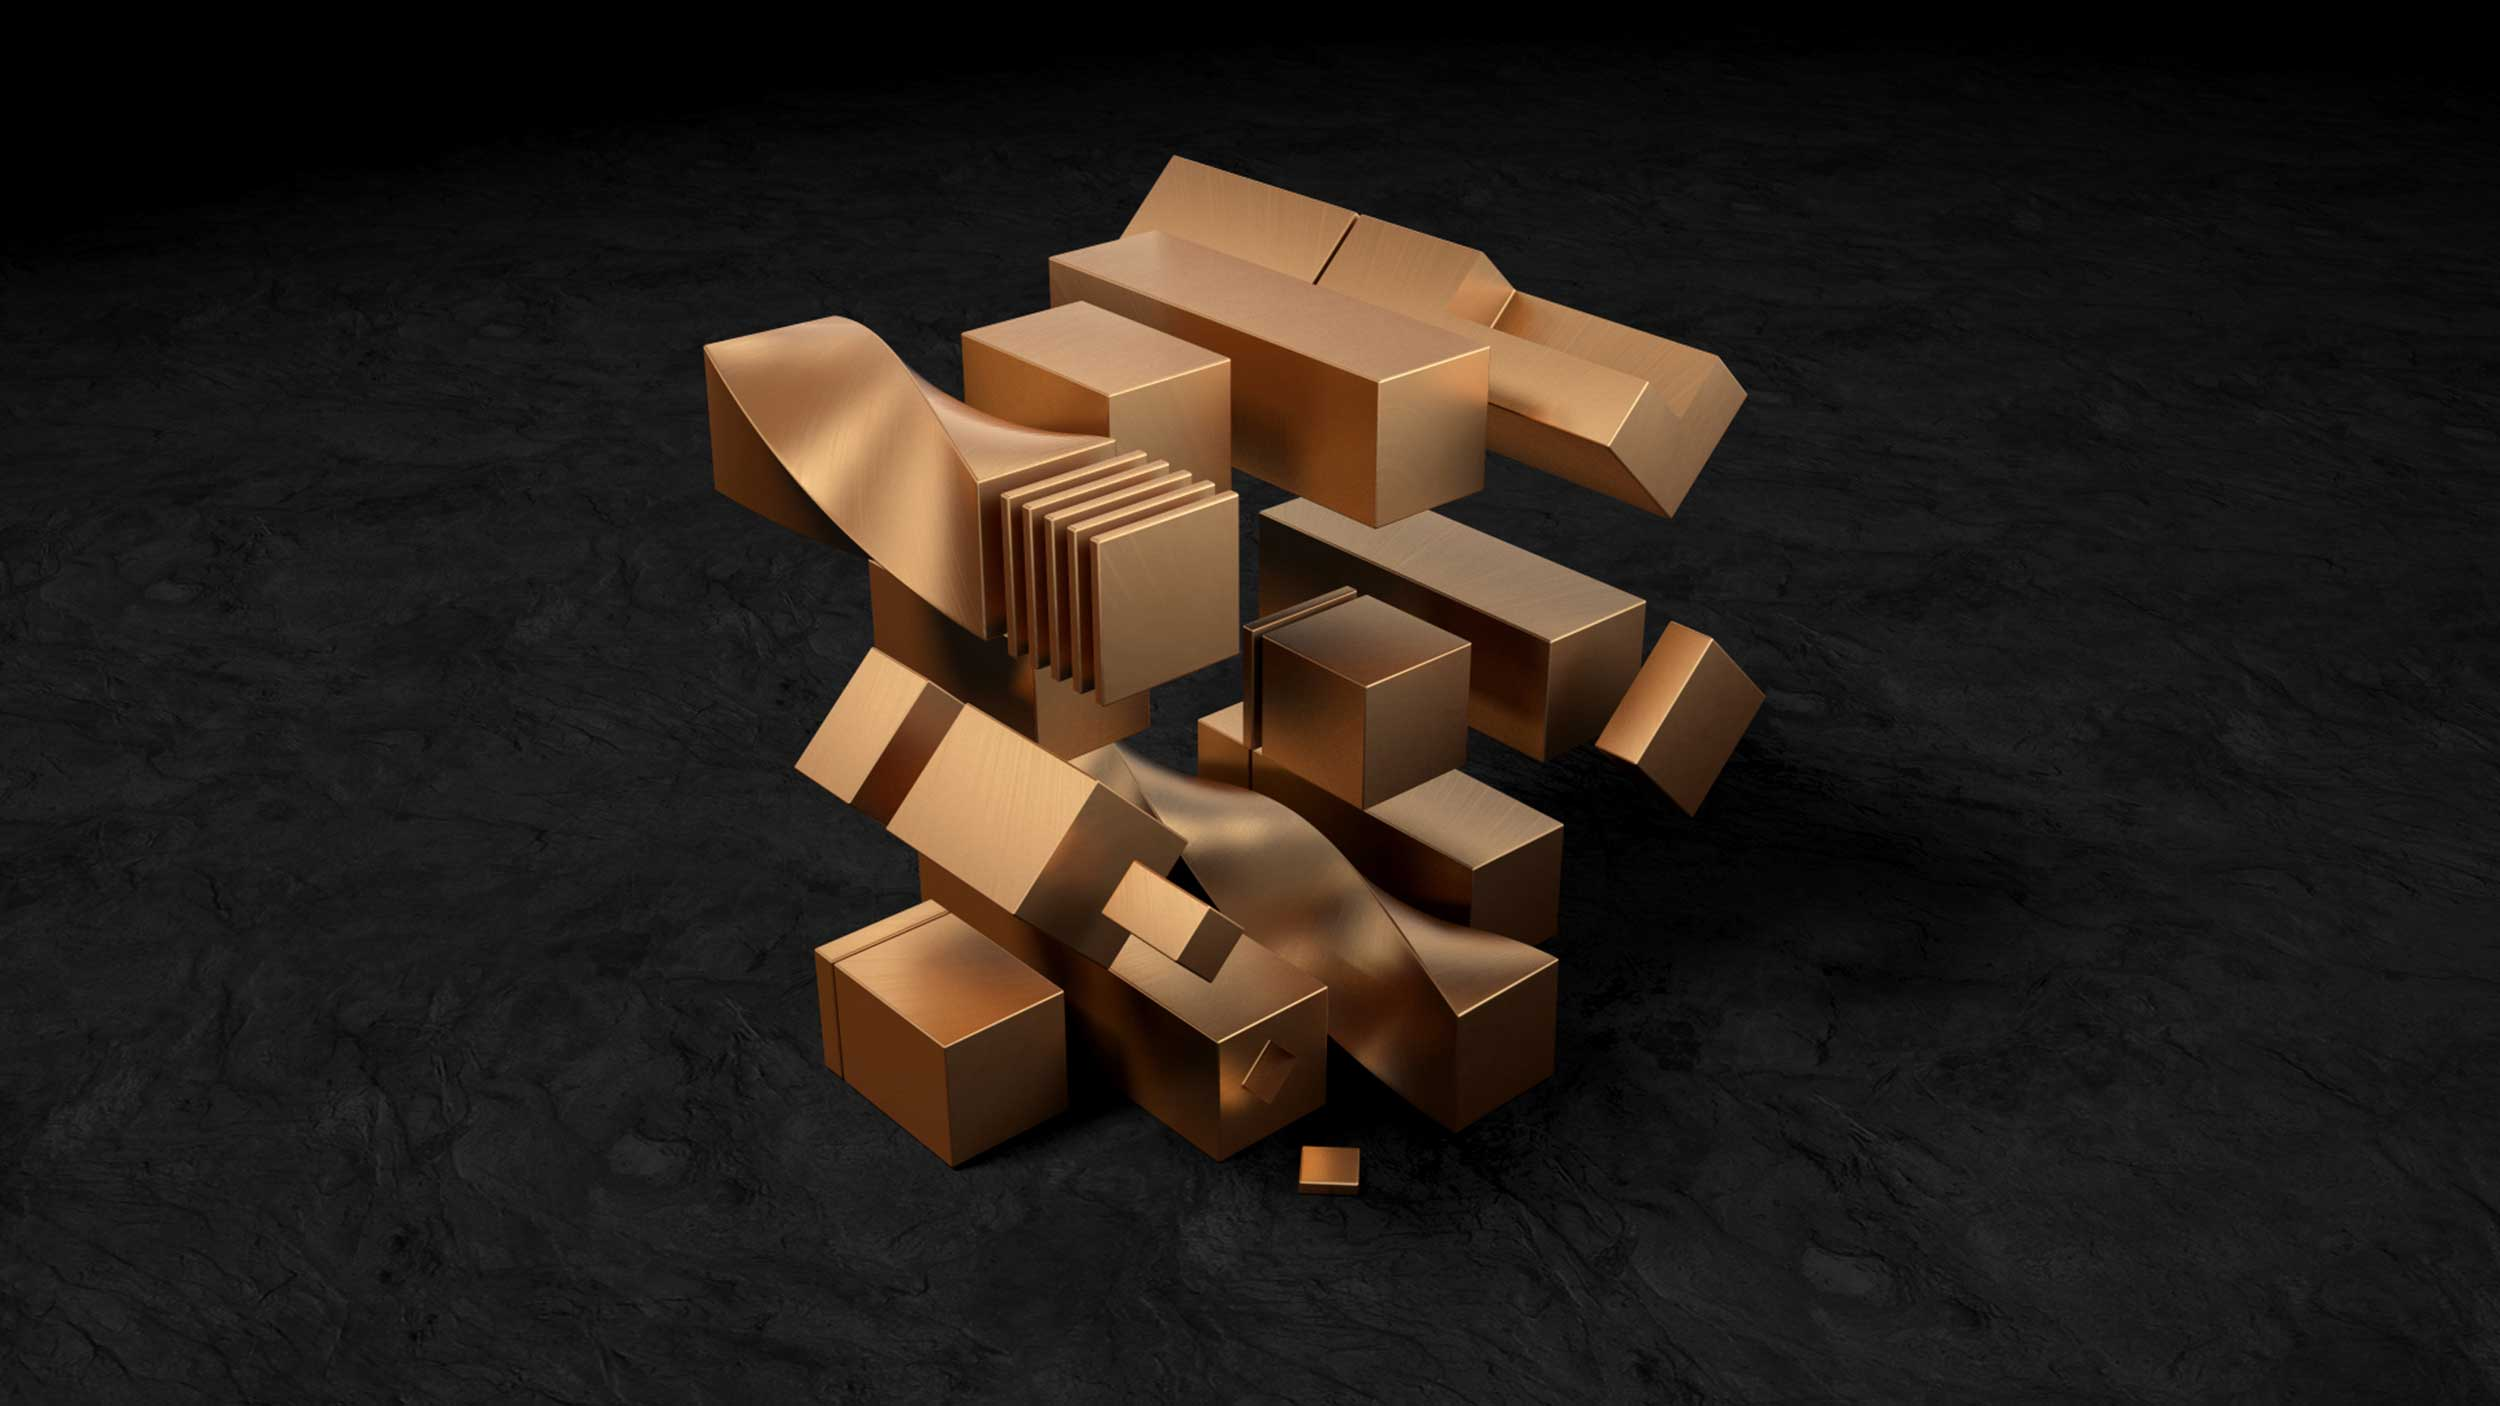 cgi-textured-shapes-Bronze-rectangle-twisted-sculptures-Nico Castro